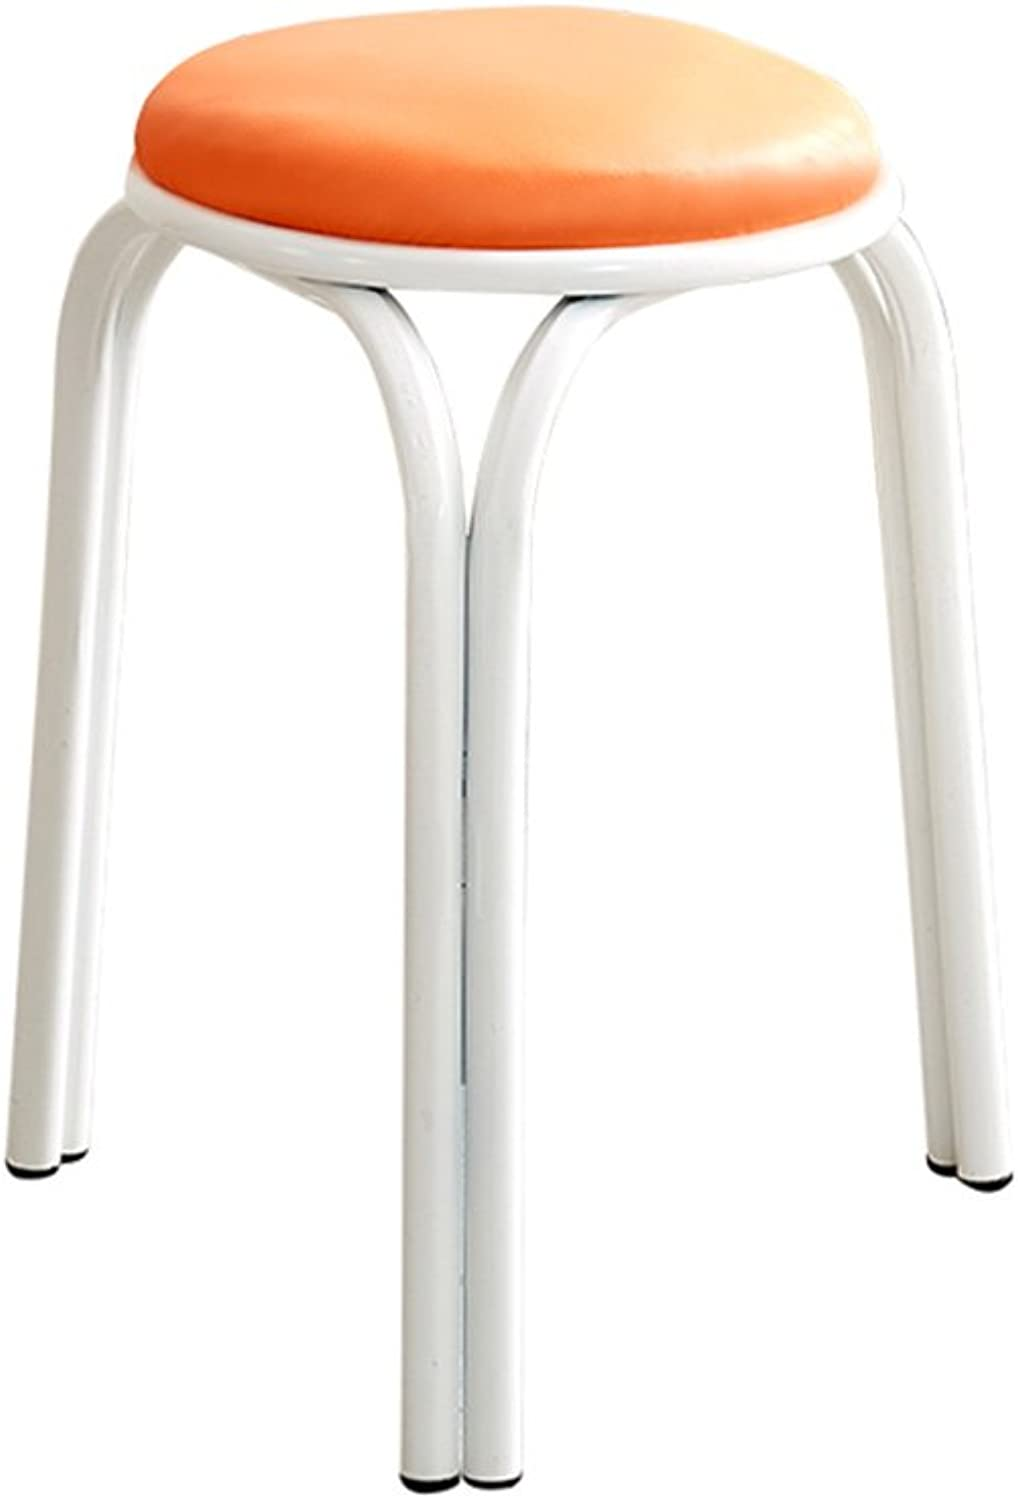 XUERUI Barstools Chair Plastic + Metal 28.5CM  45CM Pink, Yellow, Green, orange Strong Stability (color   orange)